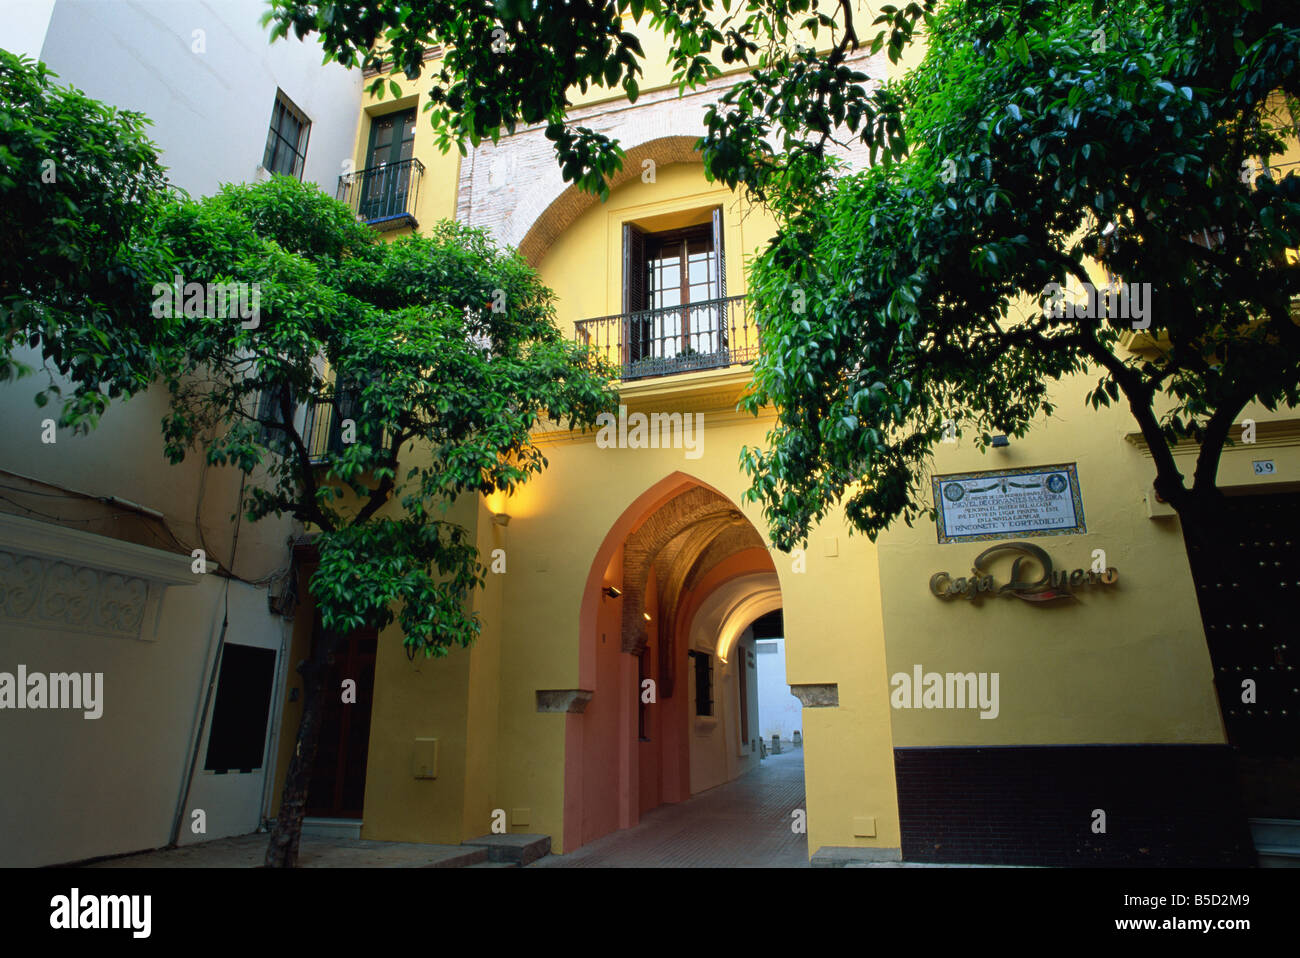 Arched passageway mentioned in novel by Cervantes, Santa Cruz district, Seville, Andalucia (Andalusia), Spain, Europe - Stock Image